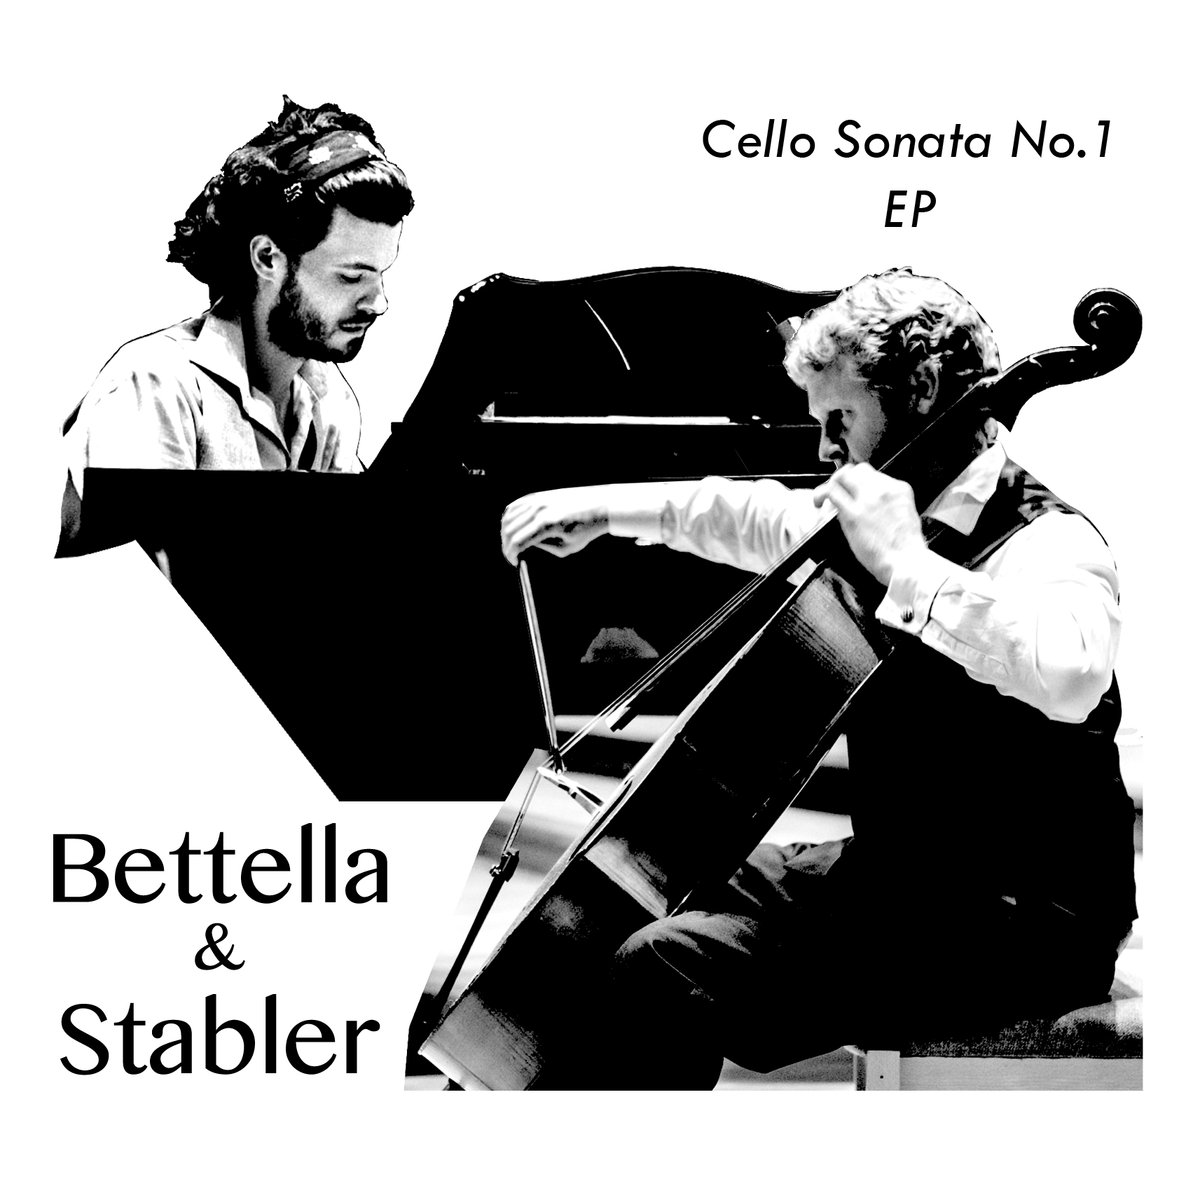 Artist:   Bettella & Stabler    Title:  Cello Sonata No.1 EP   Credit:  Mastering   Year:  2018